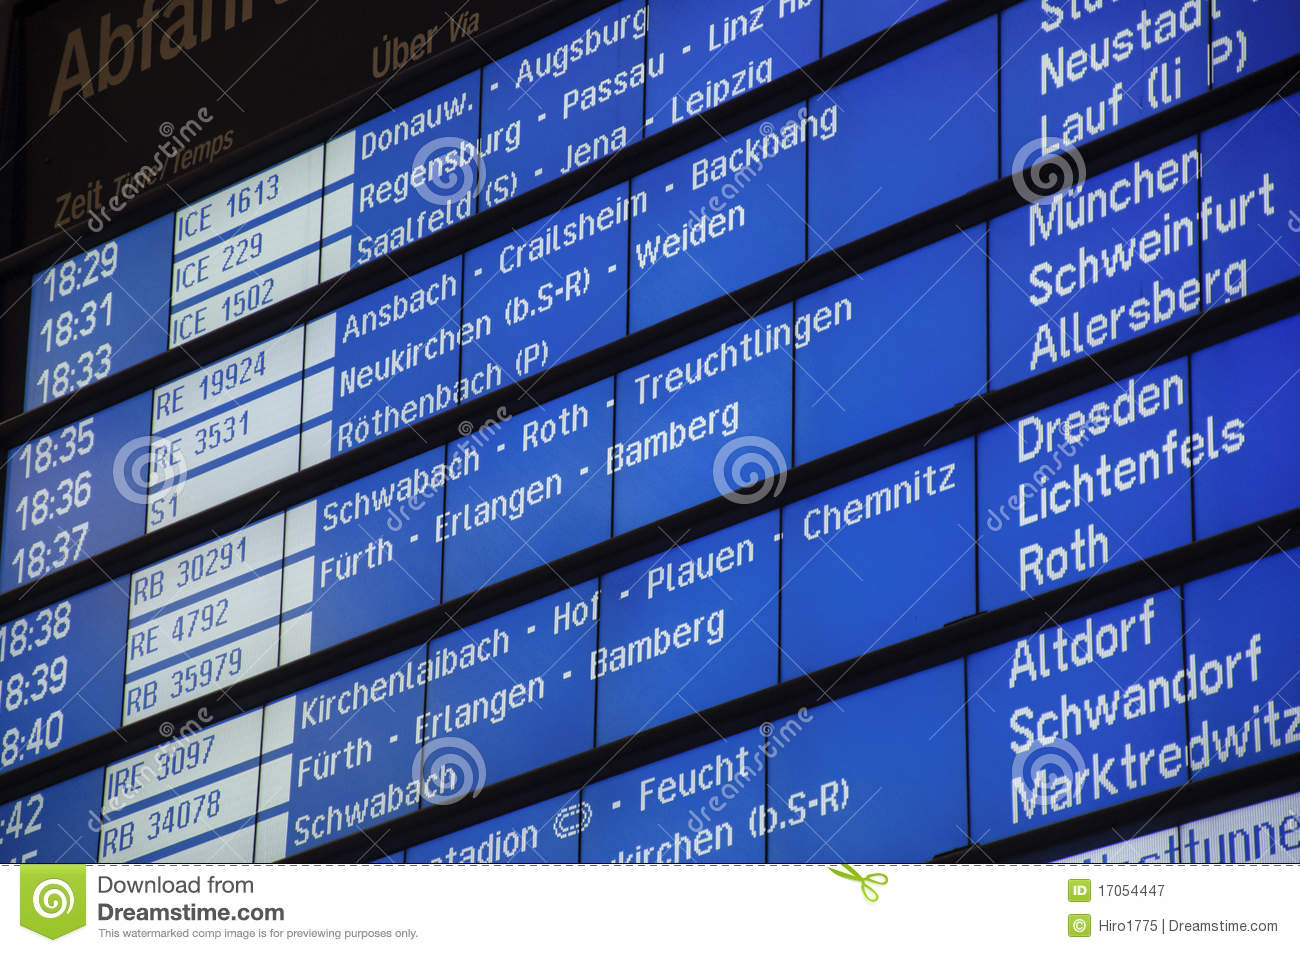 timetable in train station of deutsche bahn stock image image of europe timetables 17054447. Black Bedroom Furniture Sets. Home Design Ideas